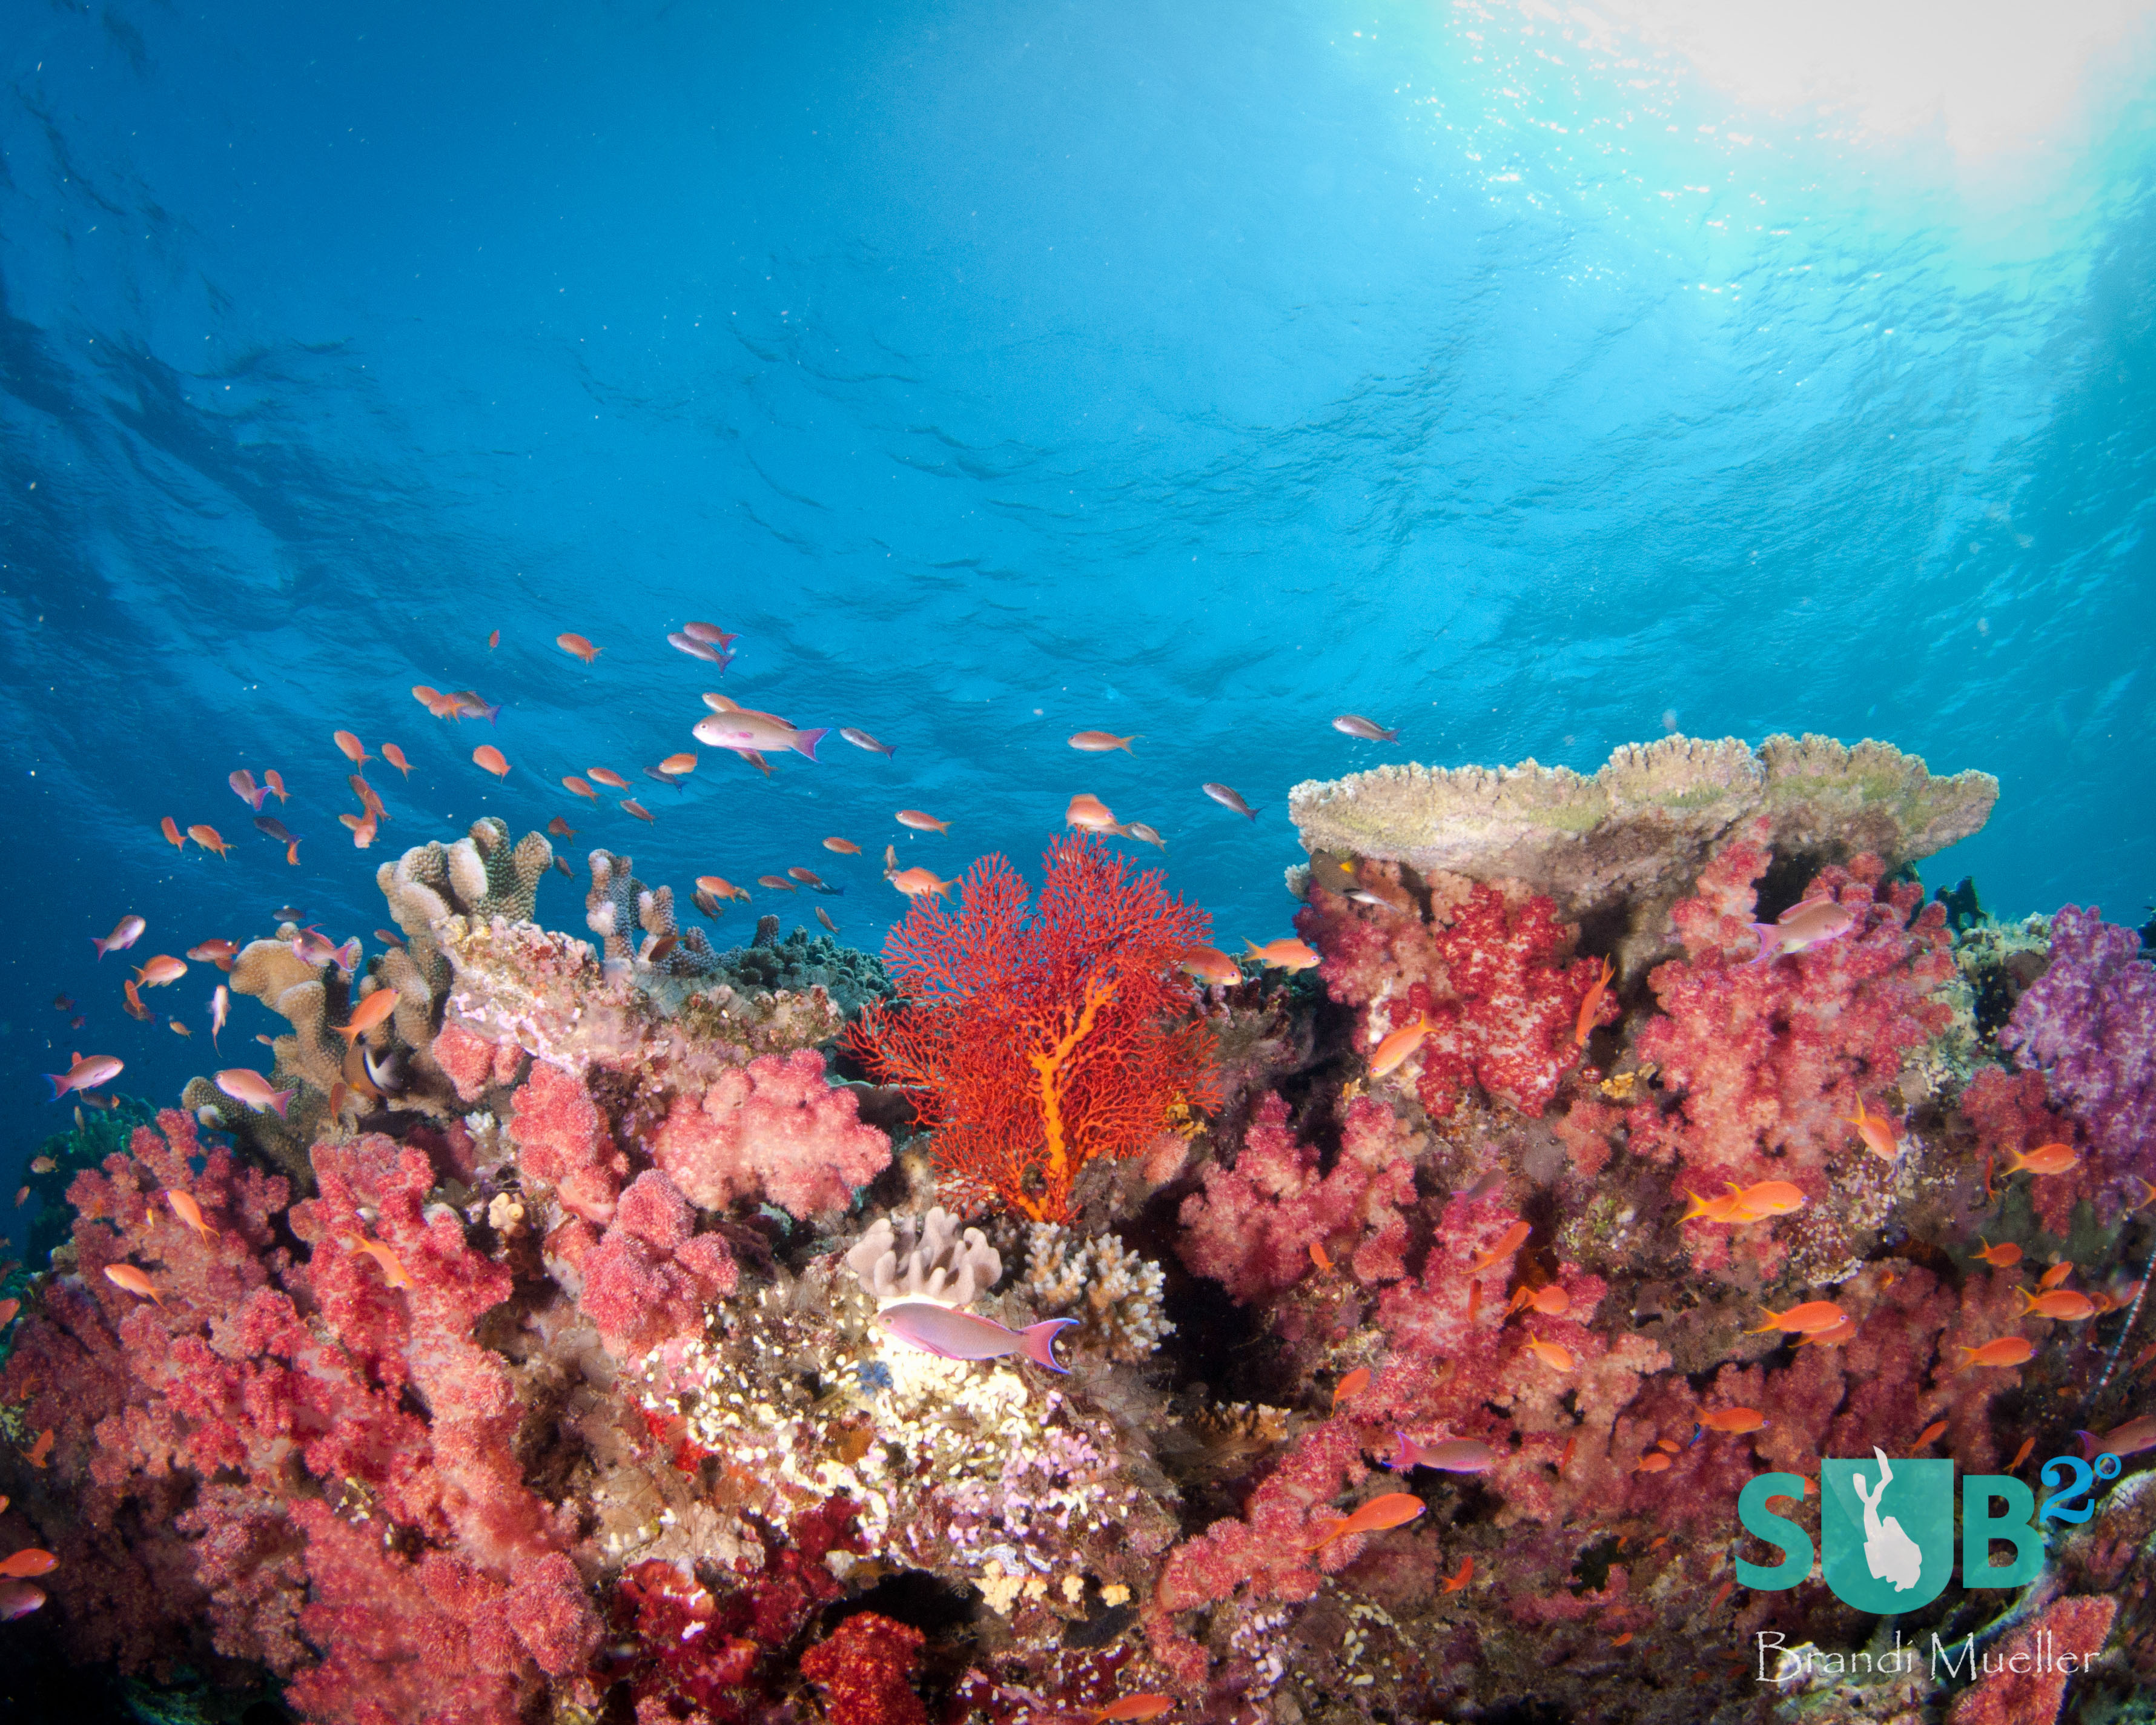 Fiji is known as the soft coral capital of the world.  Between the coral and the fish, the bright colors are endless!